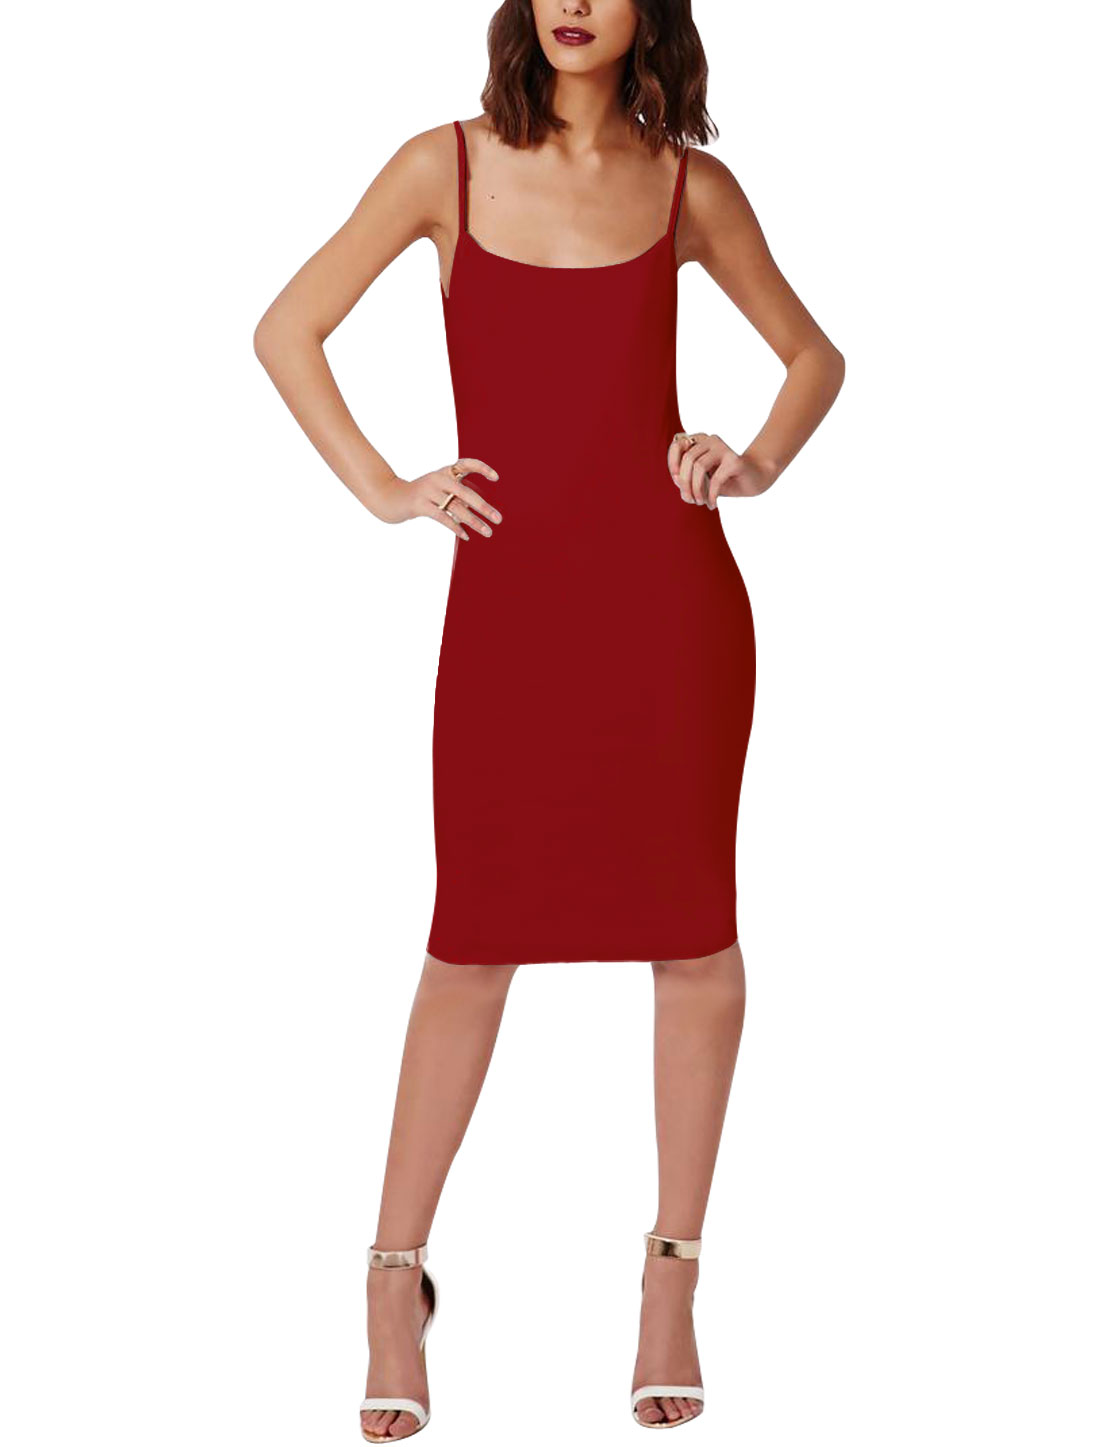 Lady Spaghetti Straps Full Lined Backless Wiggle Dress Warm Red XS